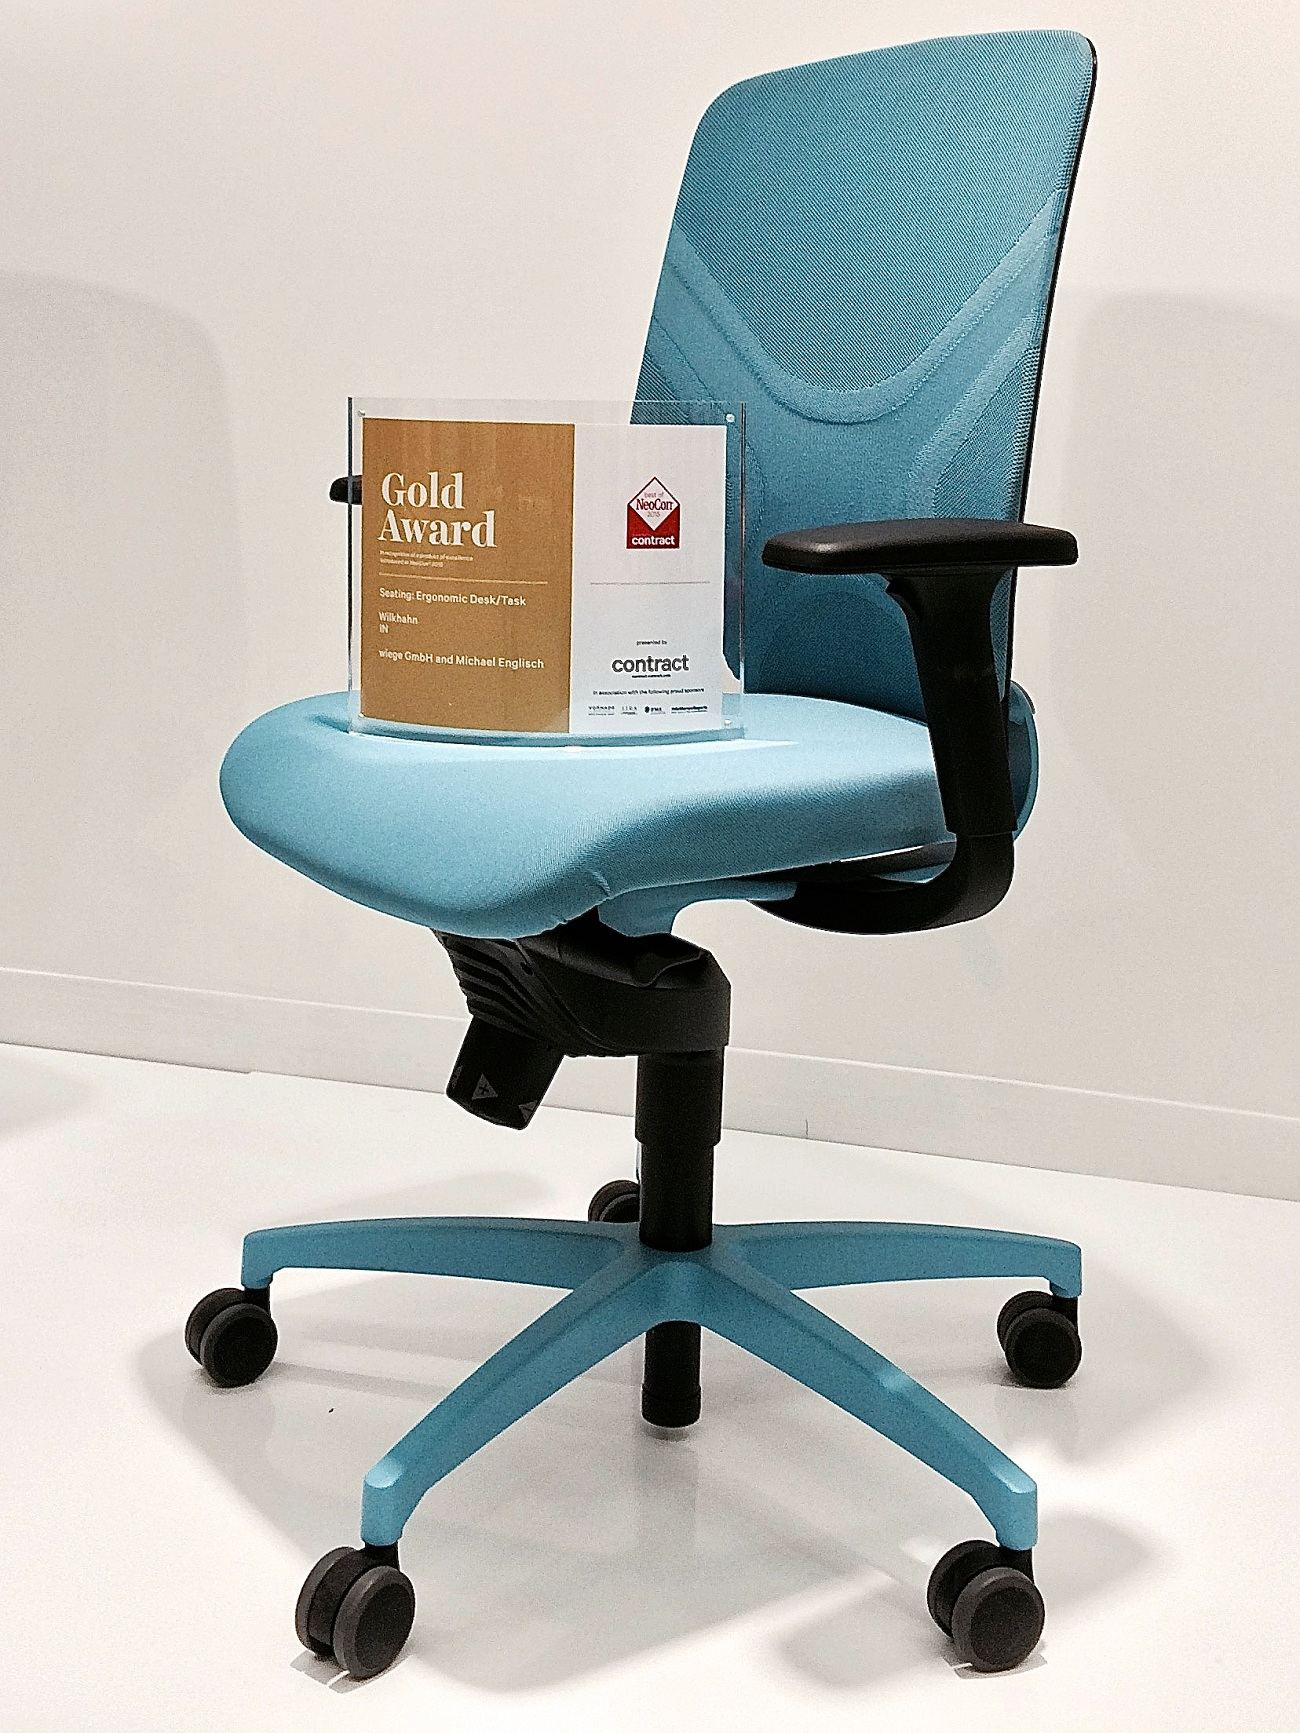 Wilkhahn Photo Gold Award NeoCon 1 compressed - Wilkhahn récompensé d'un Gold Award